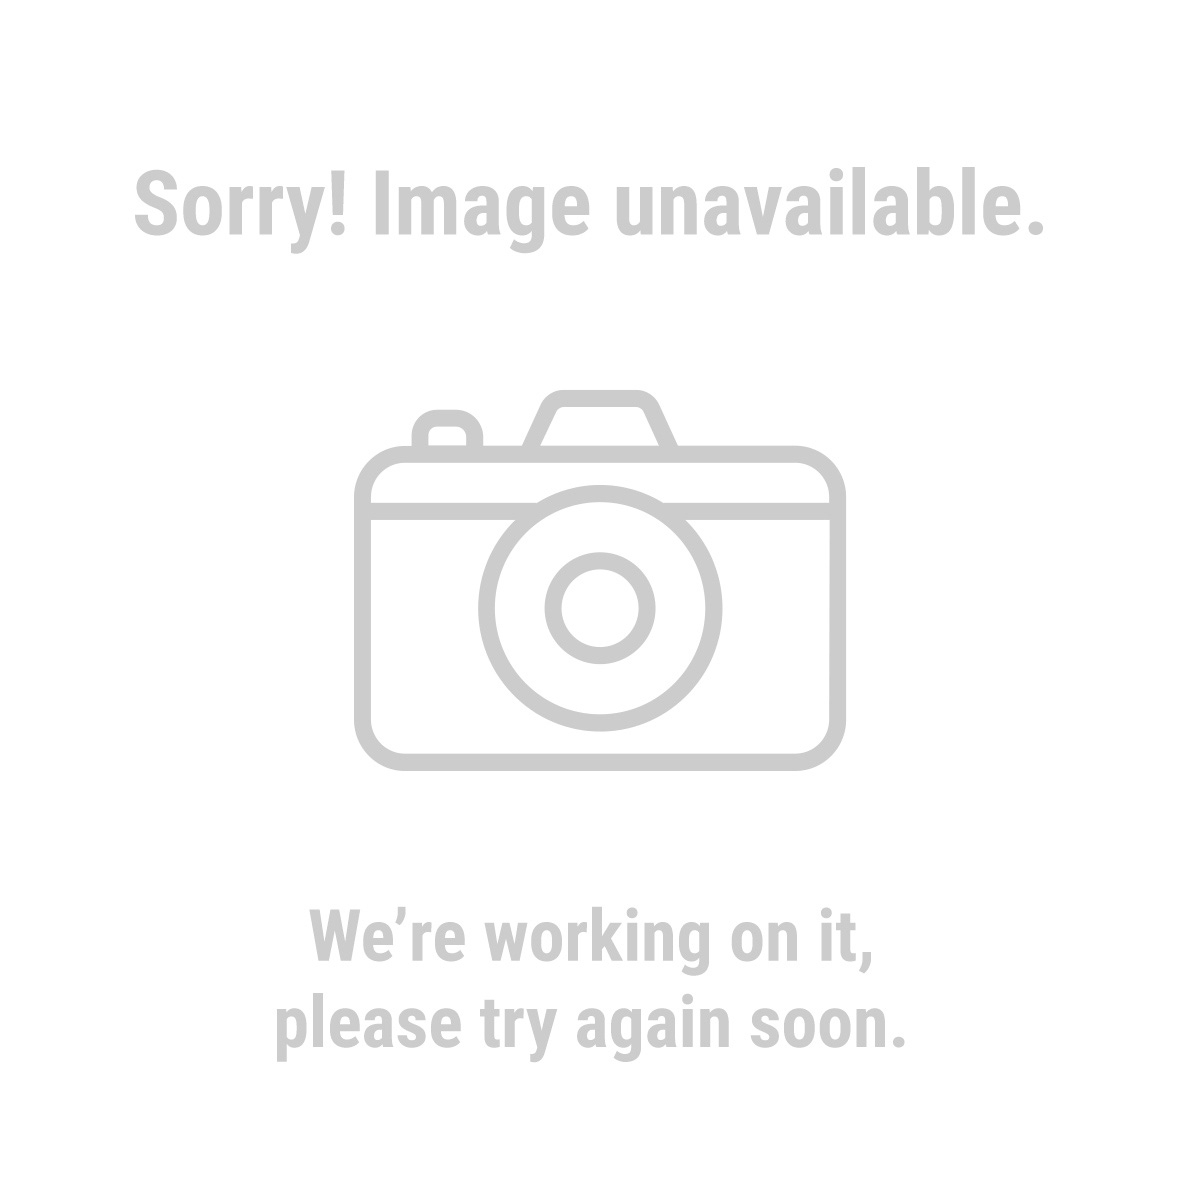 Central Machinery 68412 English Wheel Bottom Anvil Dies, Set of 6